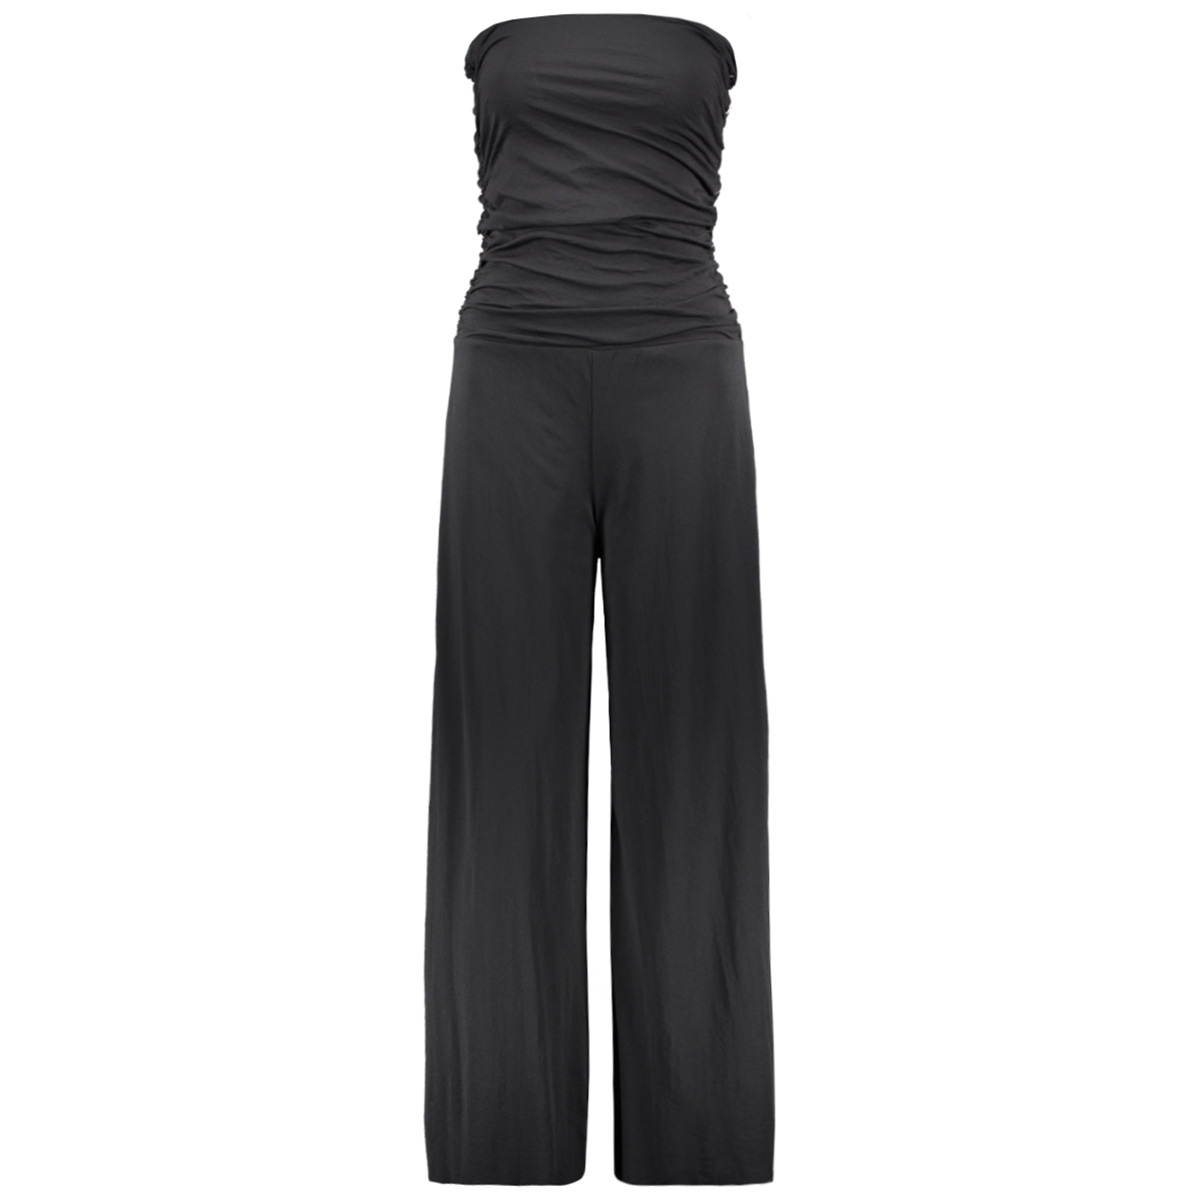 strapless jumpsuit 20 083 0201 10 days jumpsuit black